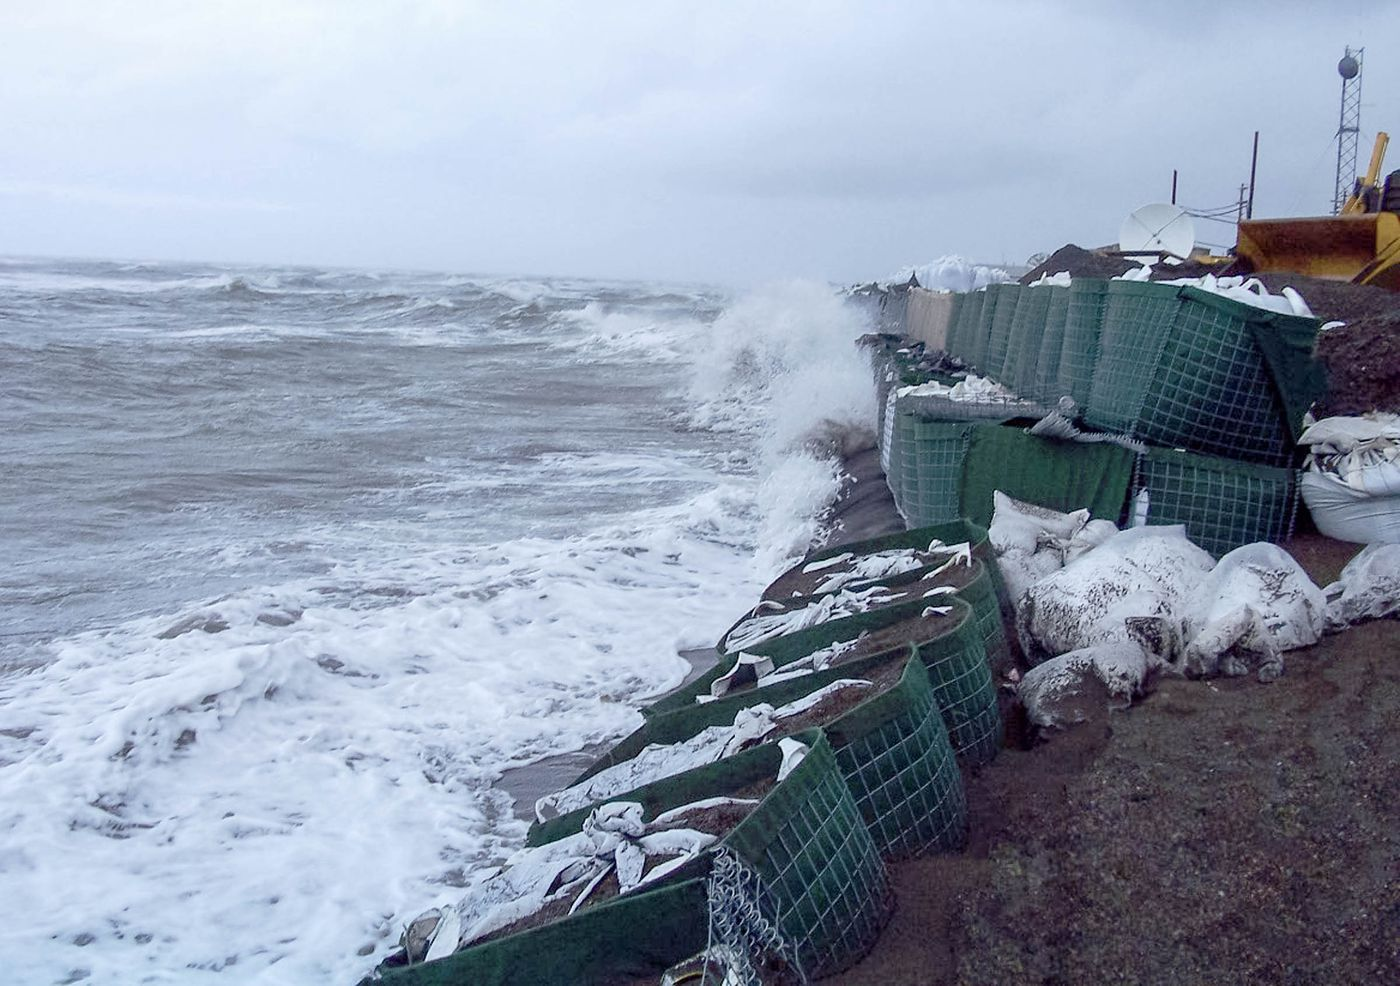 Waves pound against the sandbagged seawall in Kivalina, Alaska on September 13, 2007. A storm surge and pounding waves sheared off large segments of Kivalina's multimillion dollar sea wall causing more than 200 residents to evacuate the village built on a slender strip of land.